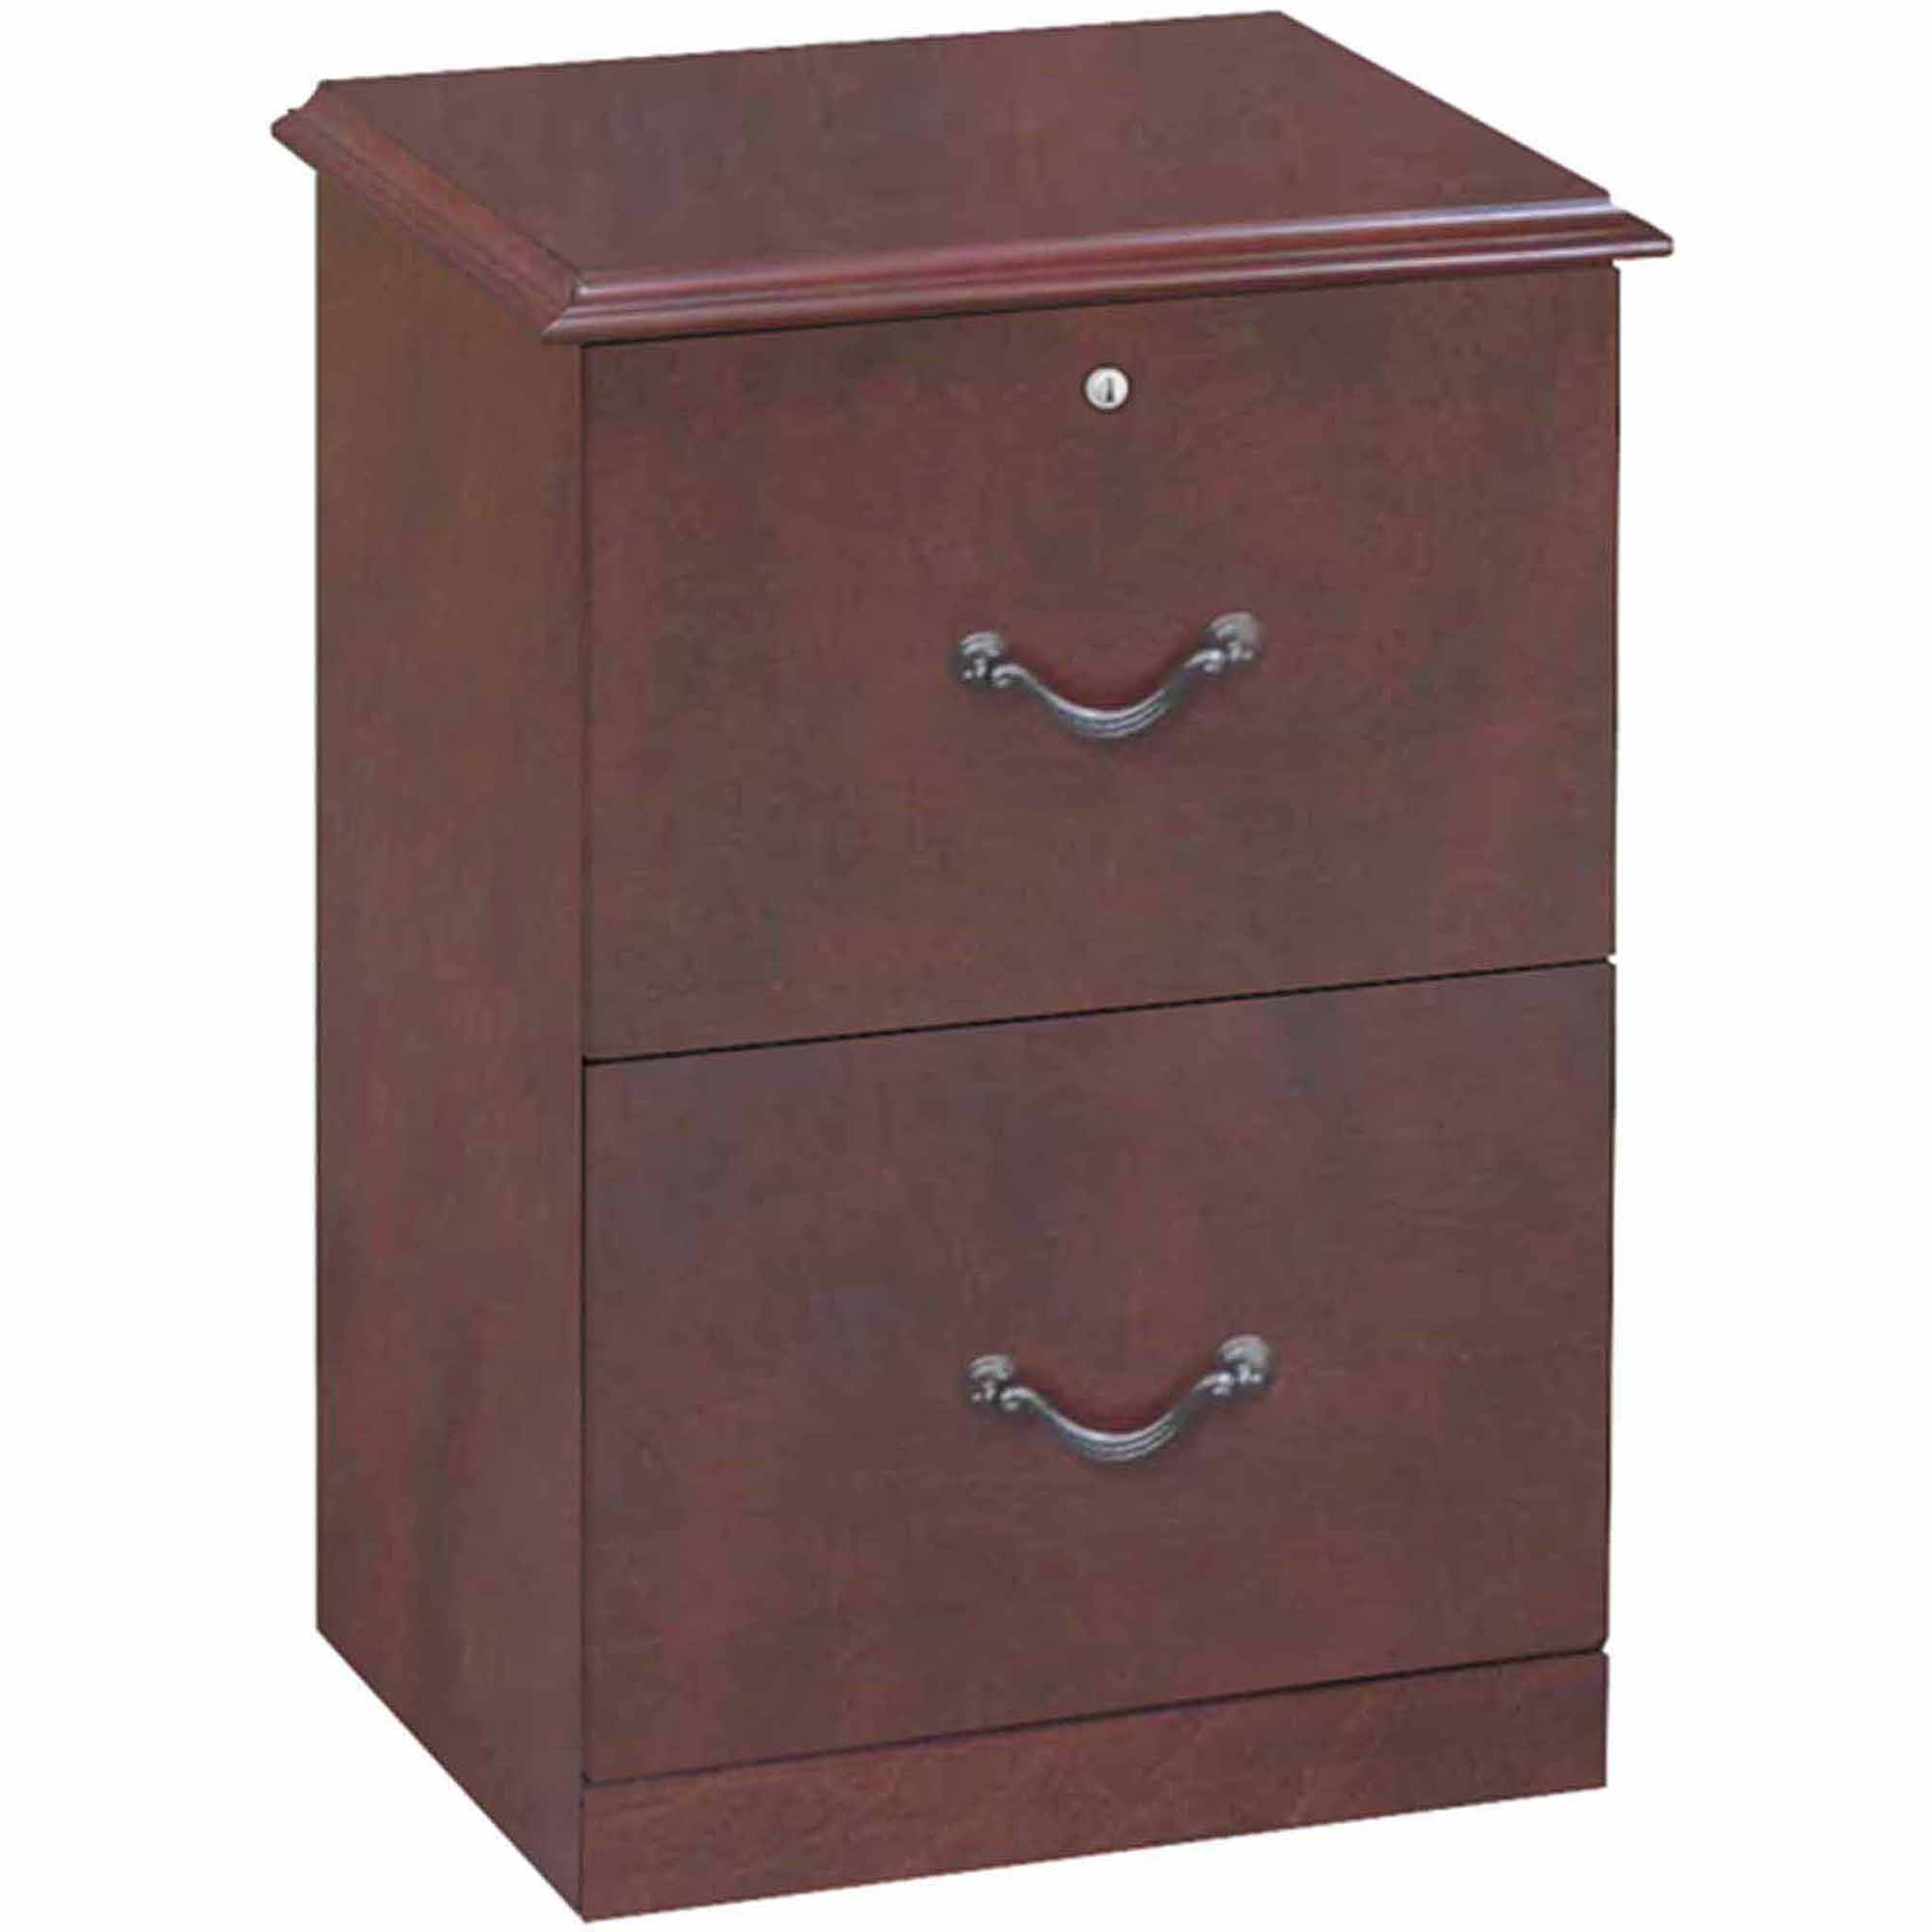 2 Drawer Vertical Wood Lockable Filing Cabinet, Cherry